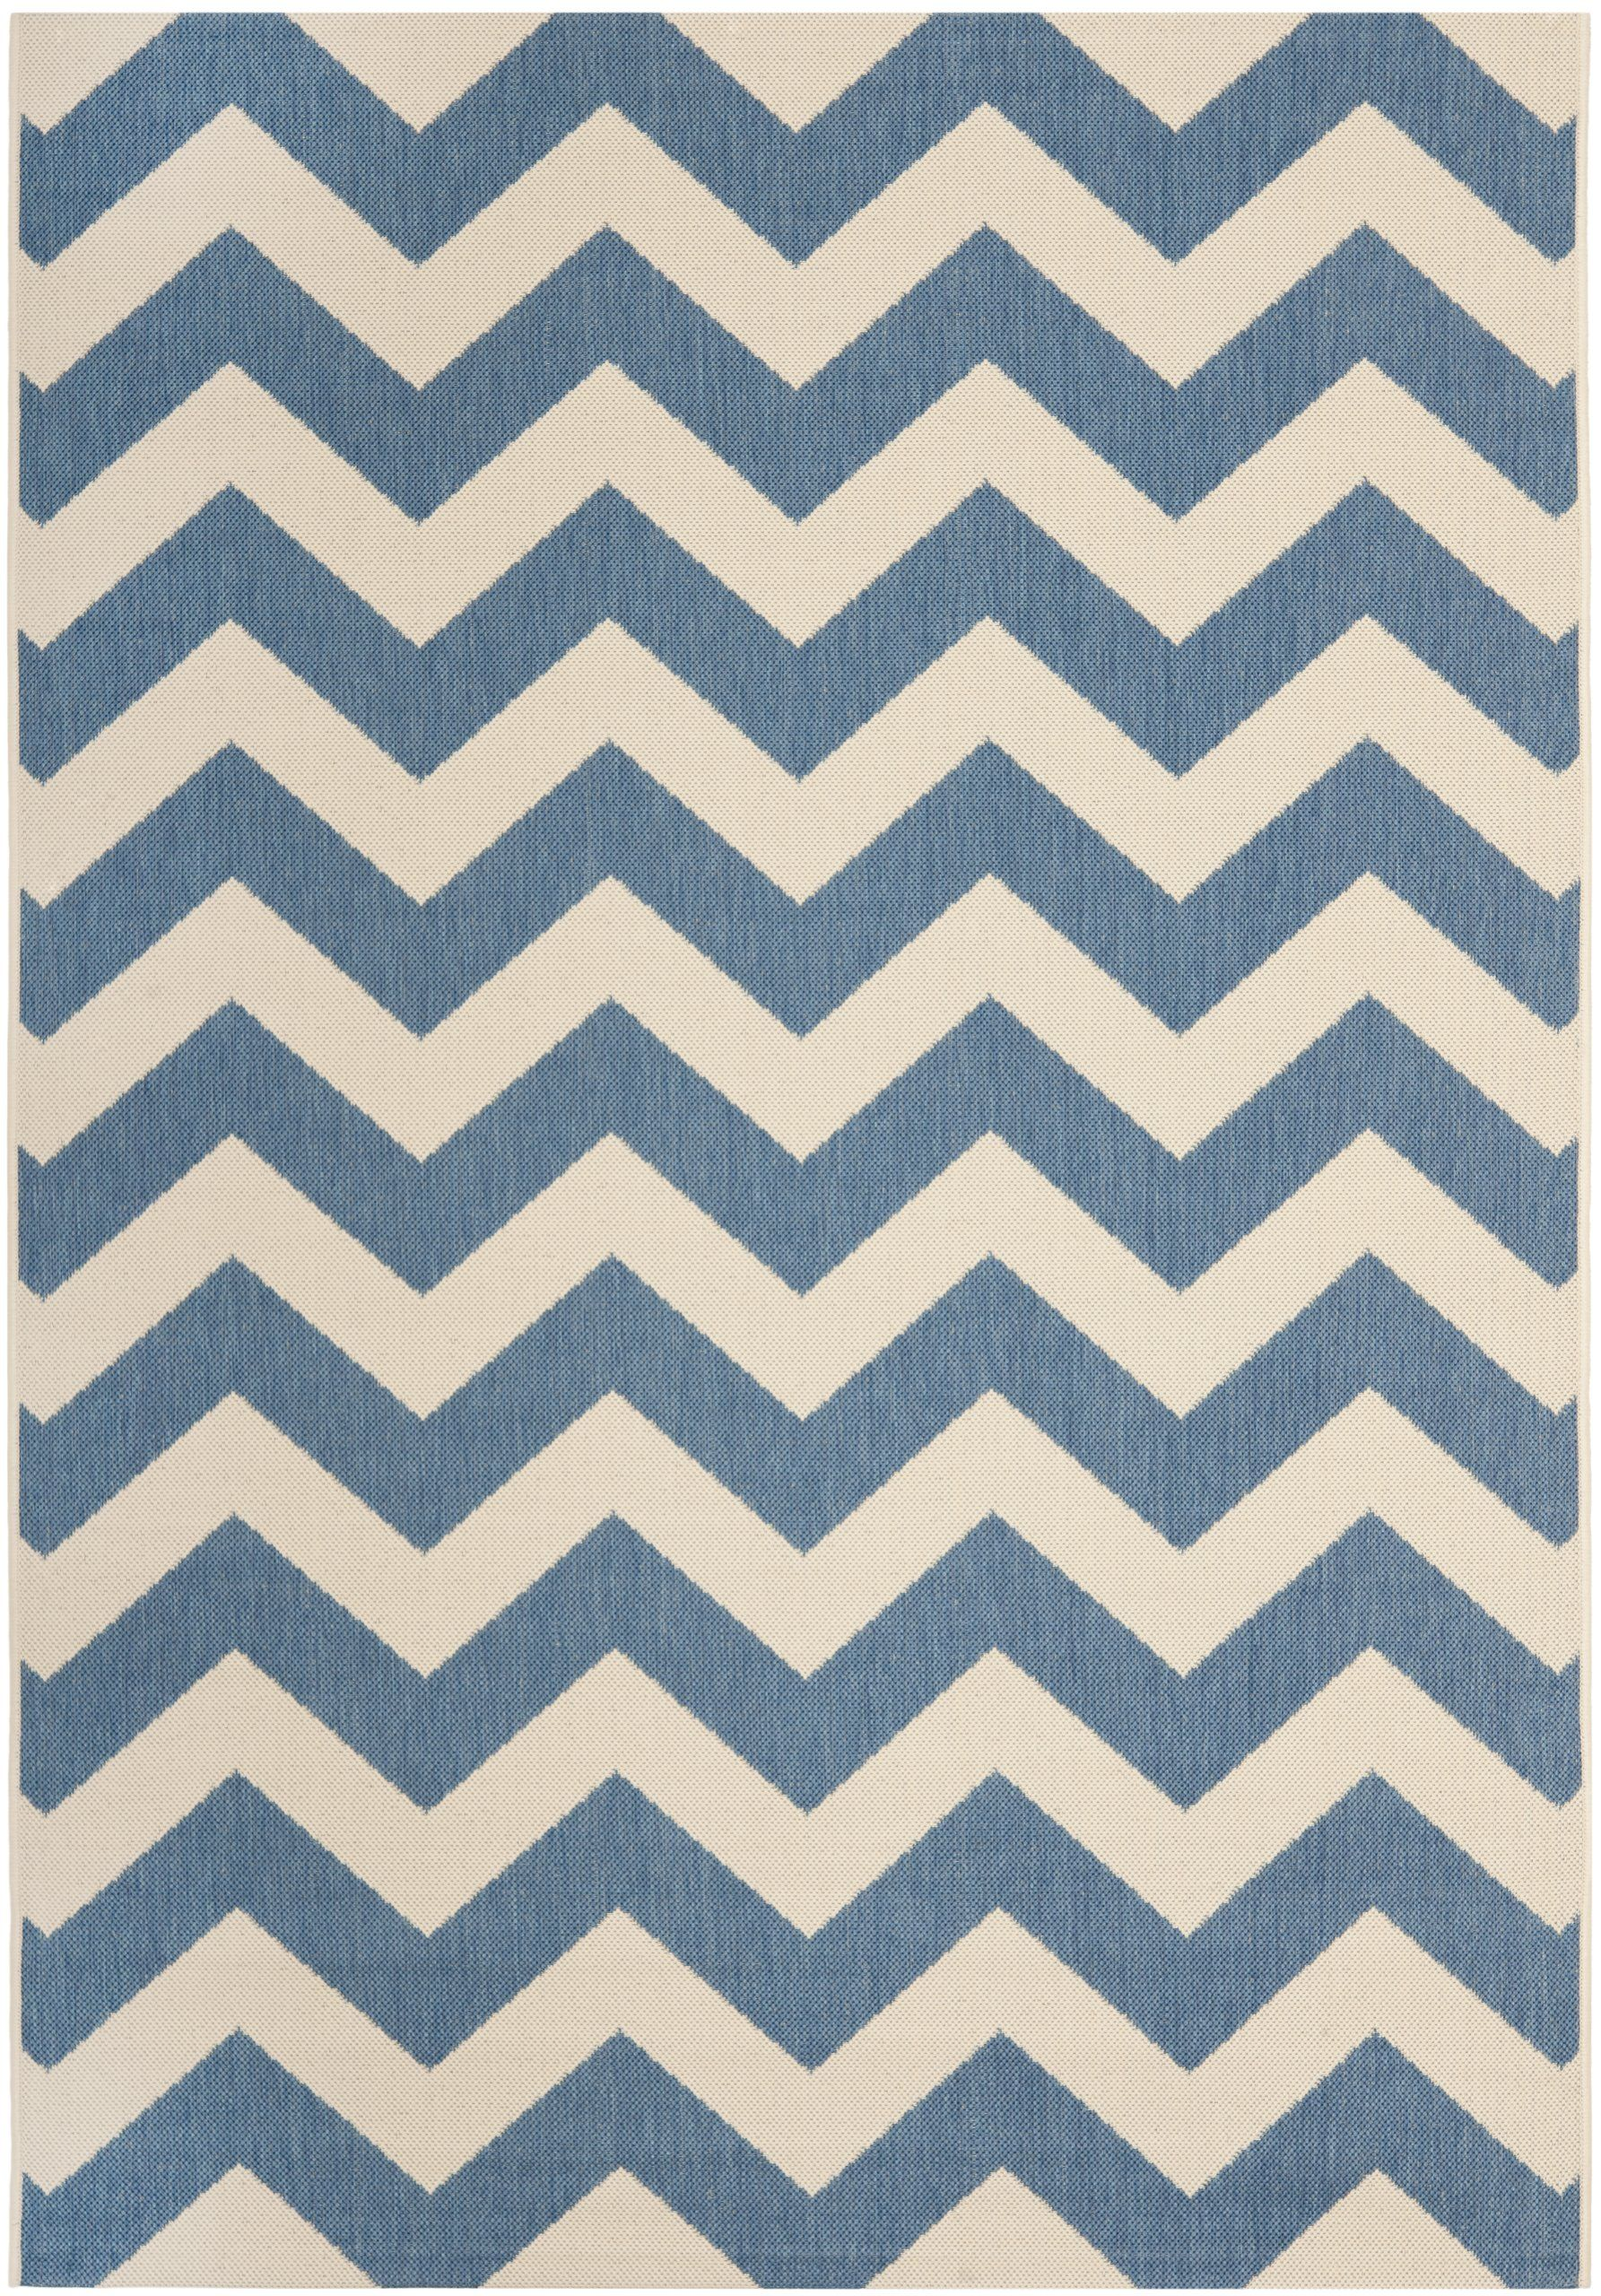 Amazon Com Safavieh Cy6244 243 Courtyard Collection Indoor Outdoor Area Rug 9 Feet By 12 Feet Blue And Beige Bought Beige Area Rugs Patio Rugs Beige Rug